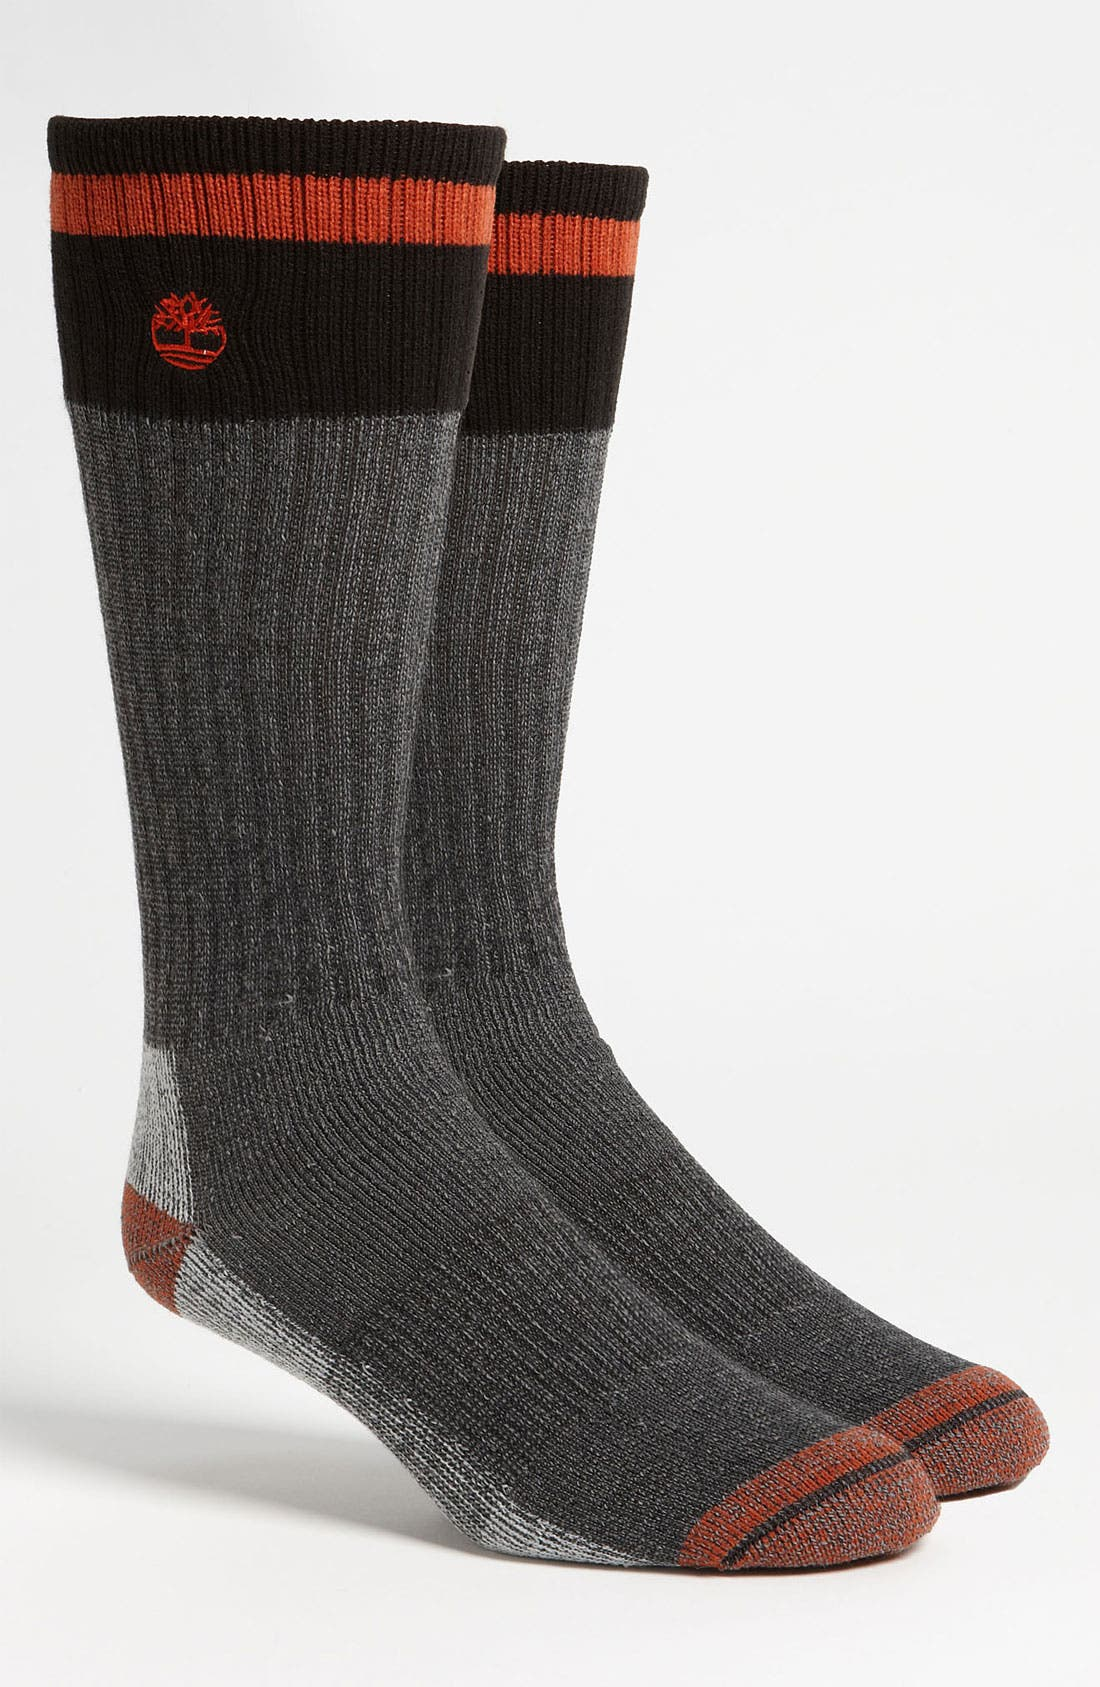 Main Image - Timberland Merino Wool Blend Boot Socks (2-Pack)